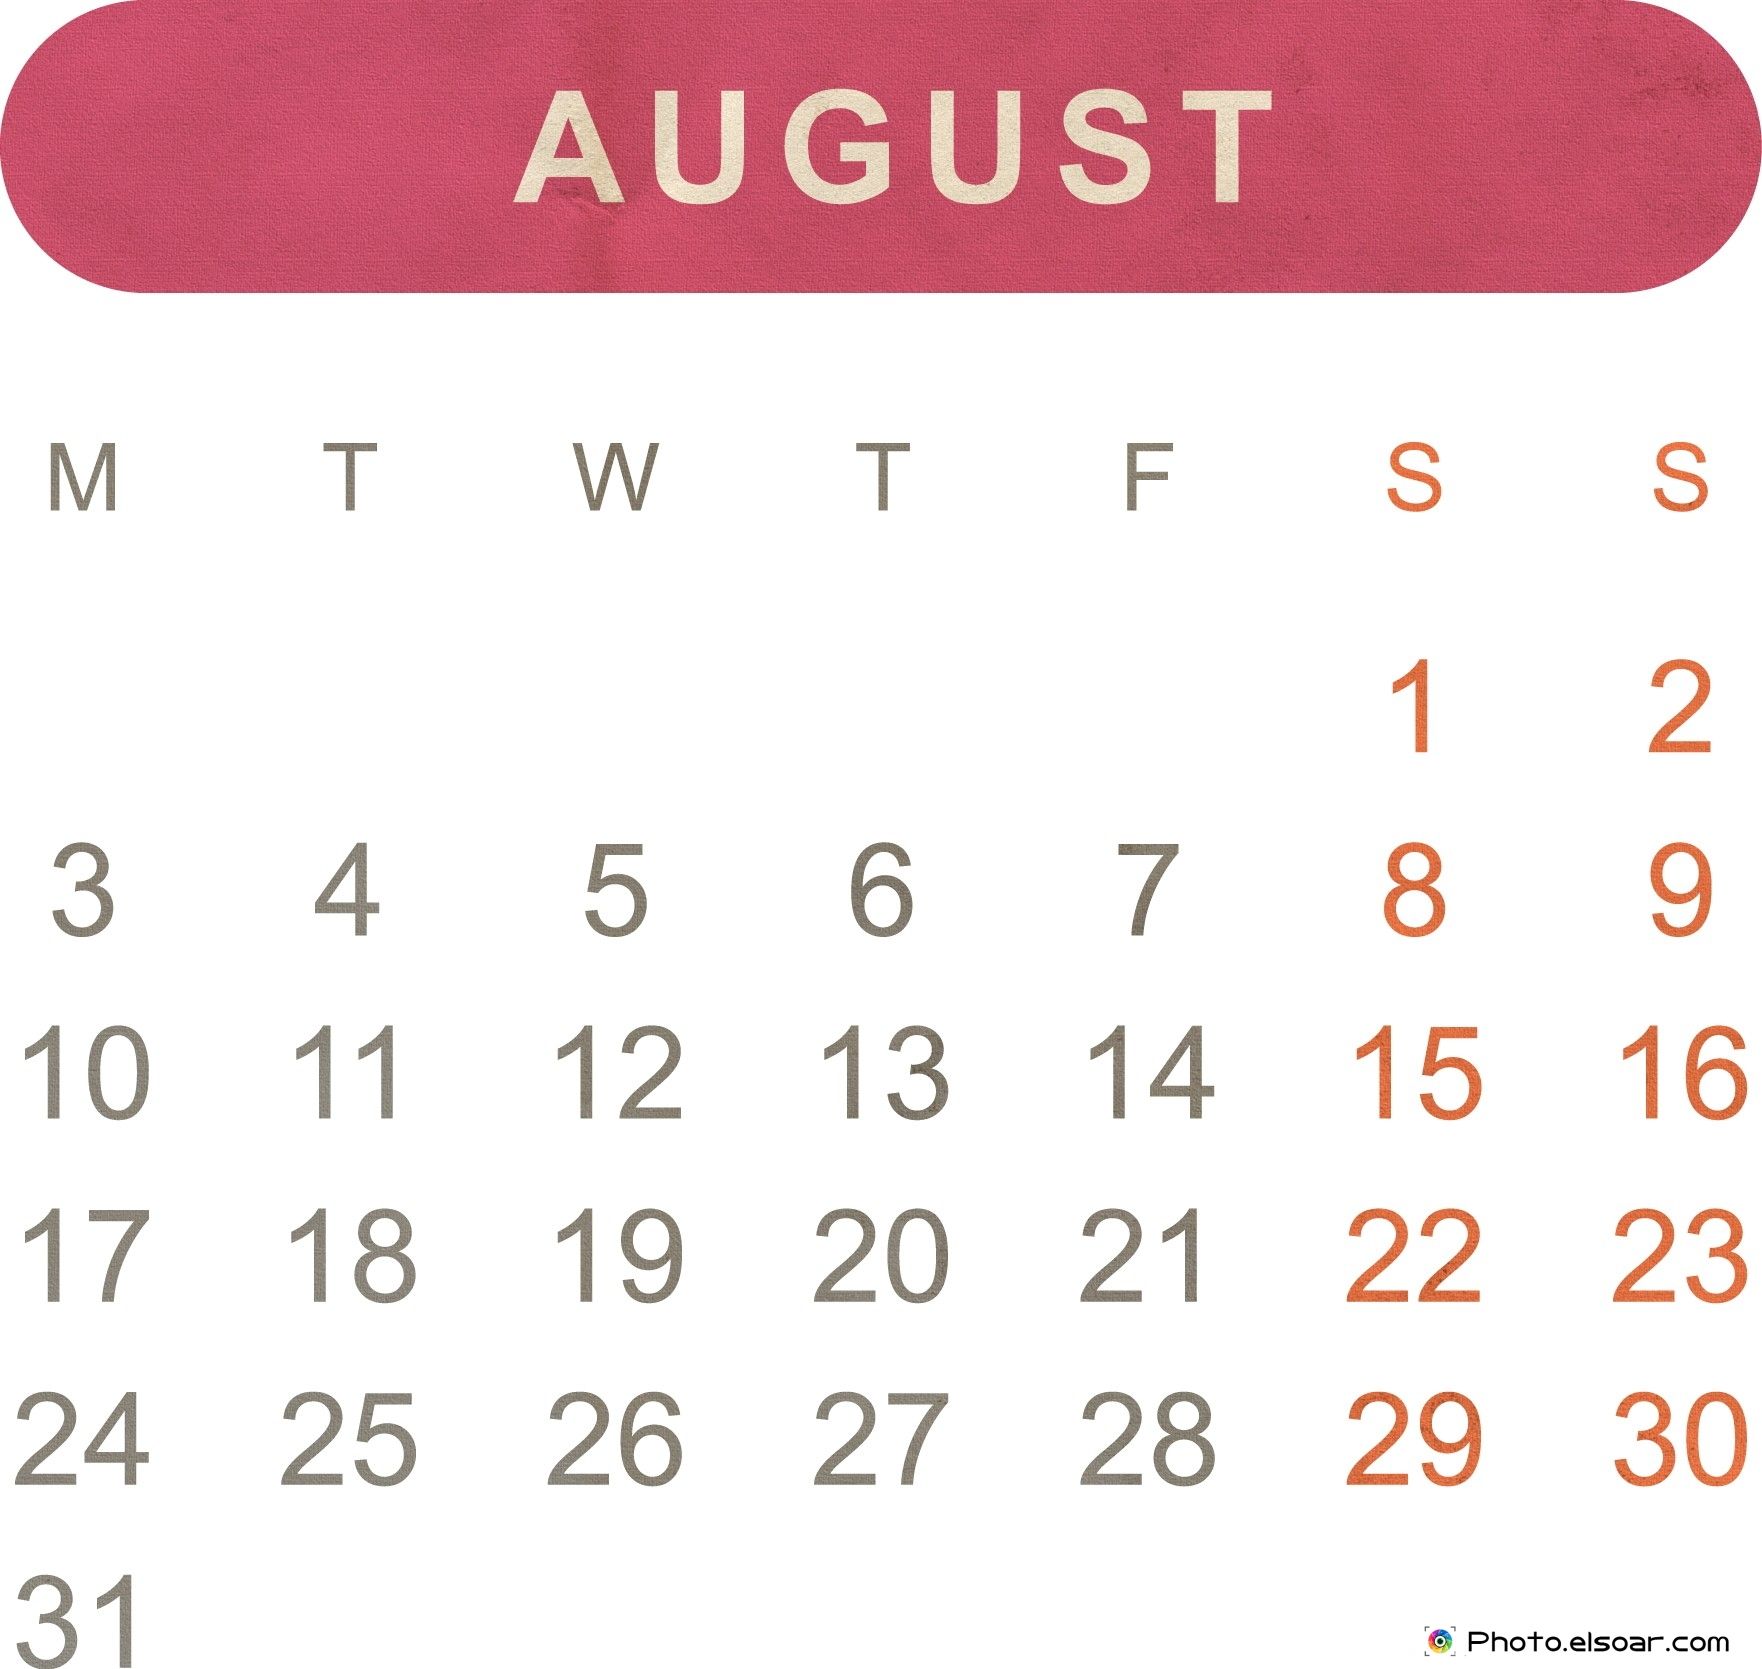 August 2015 calendar clipart. Free printable monthly jpeg